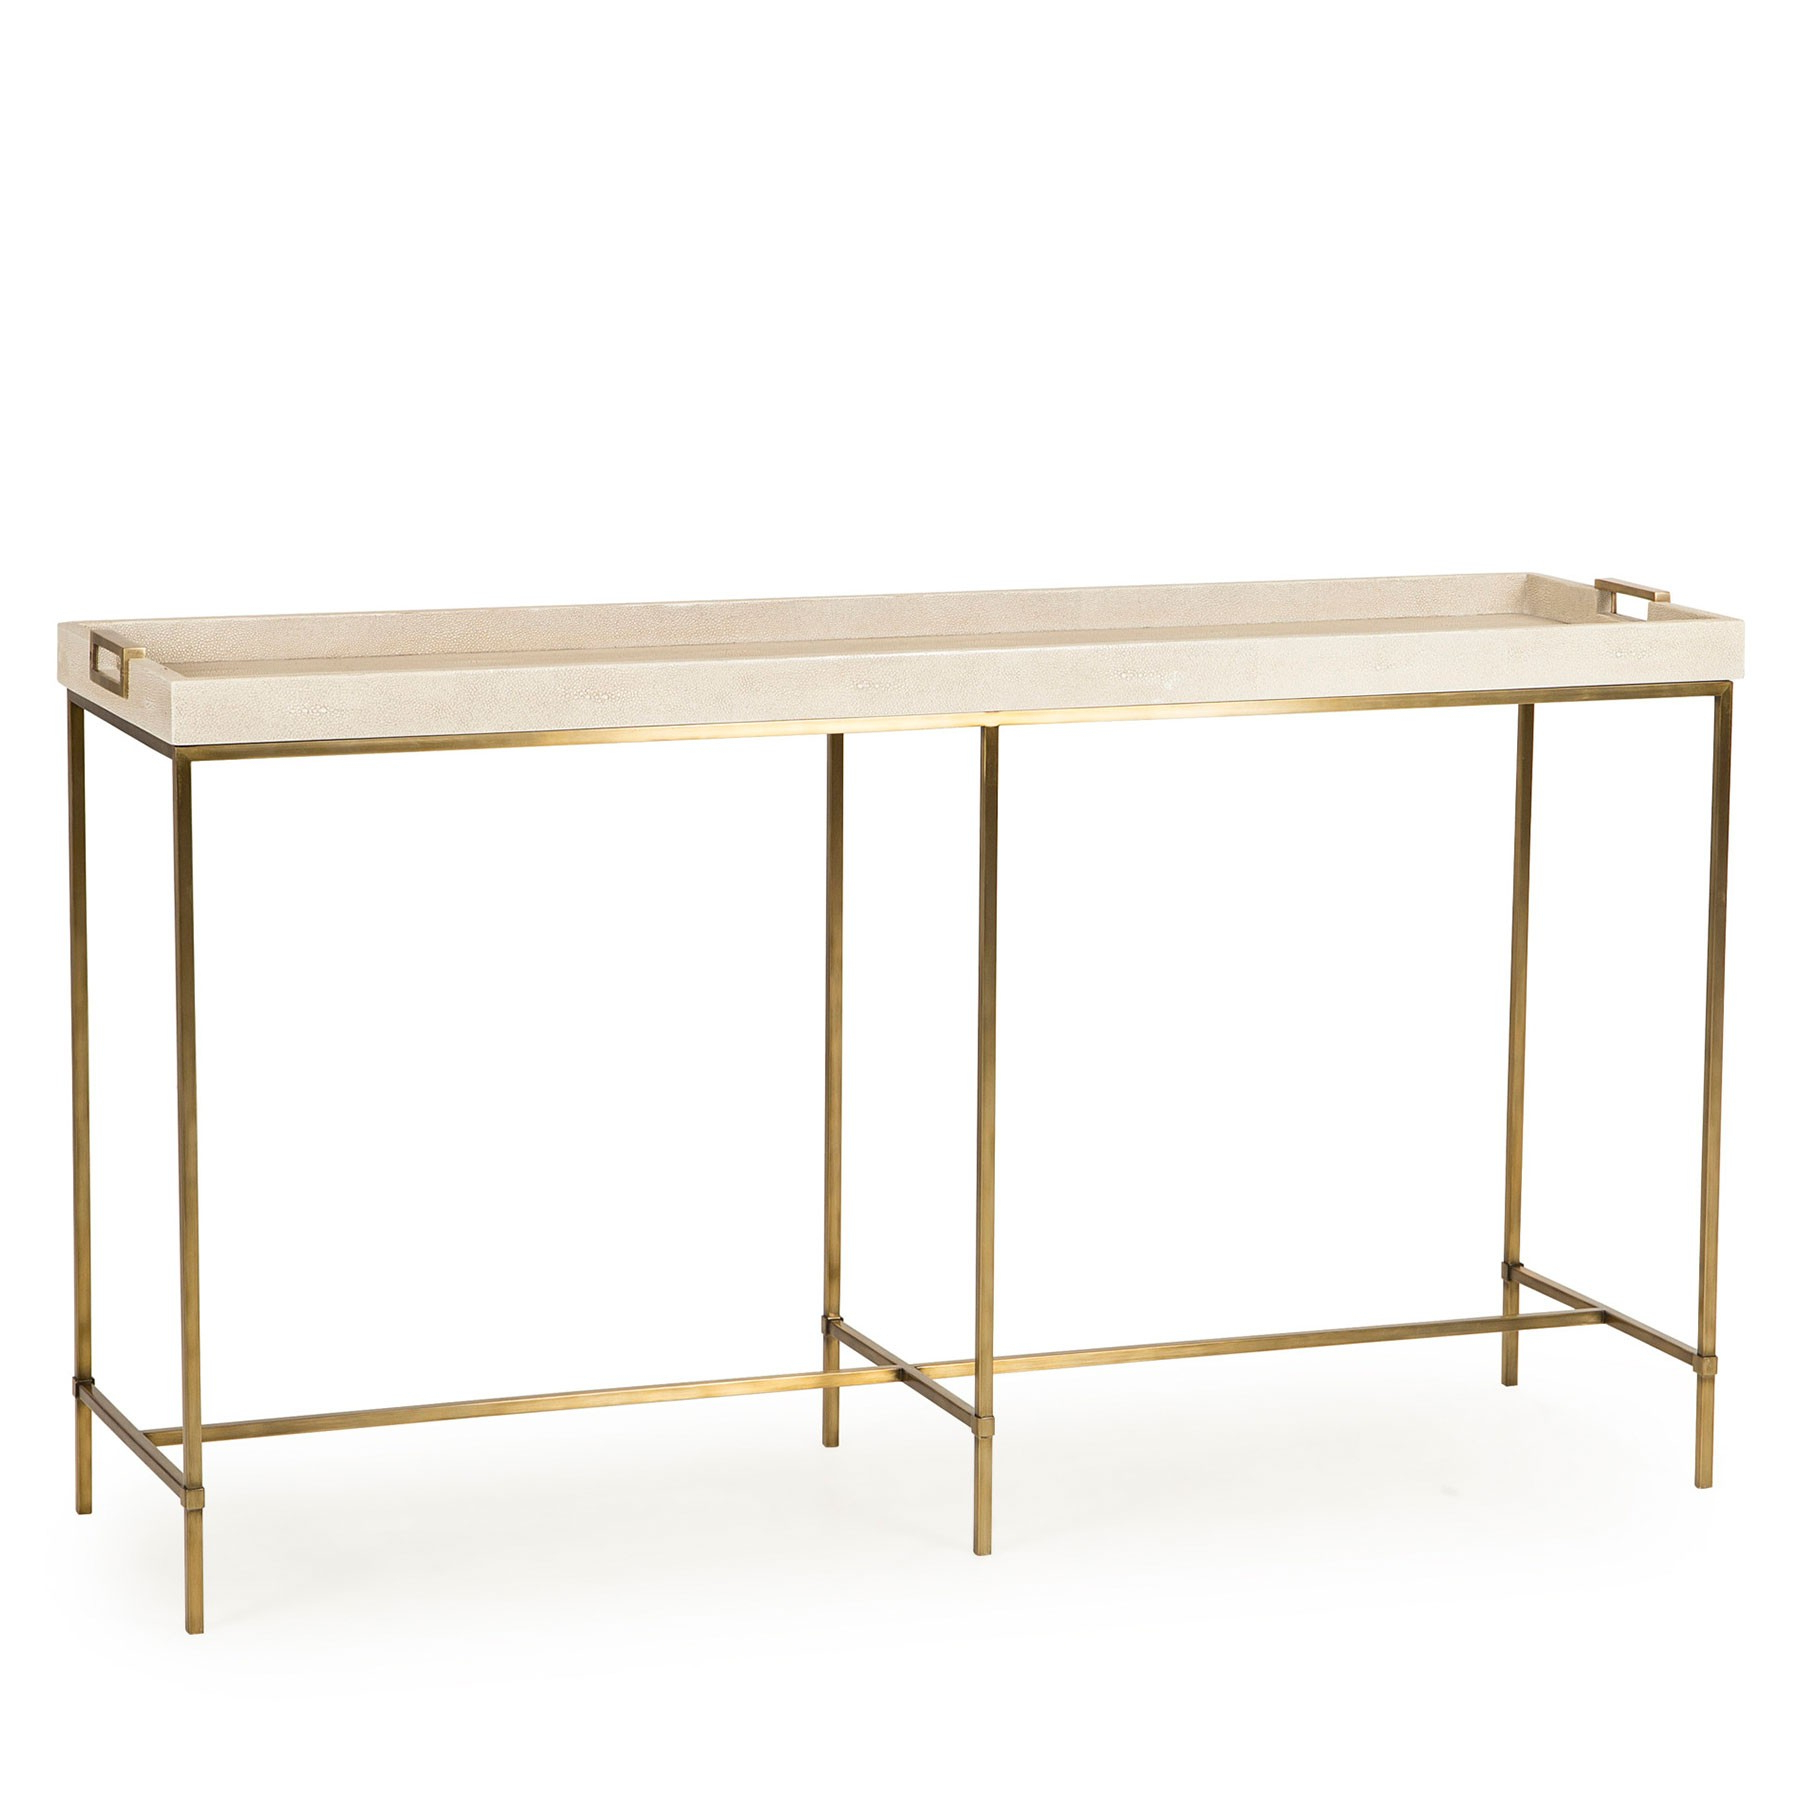 Lexi Tray Console Table – Ivory Shagreen | Resource Decor 0801085 For Faux Shagreen Console Tables (View 19 of 20)